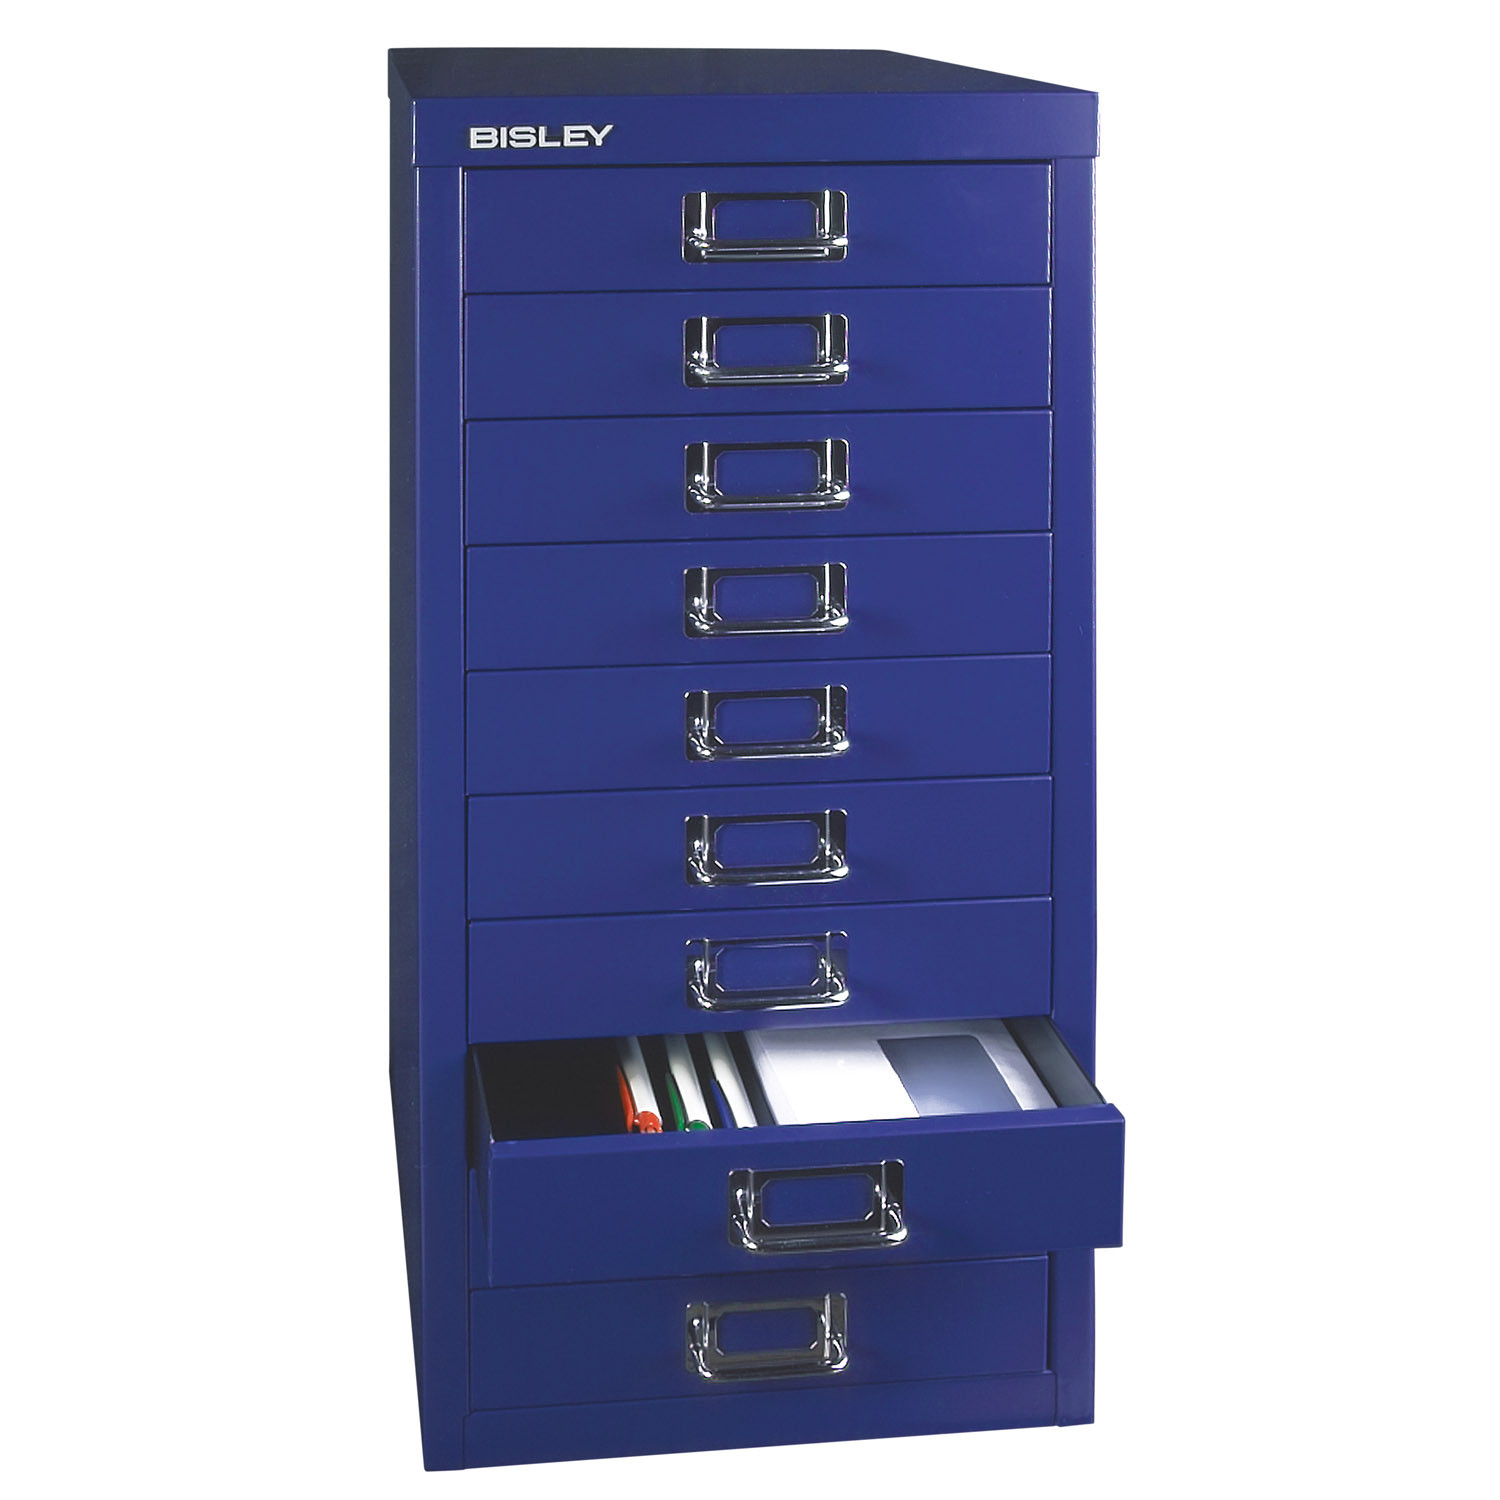 29 Series Office Storage from Bisley